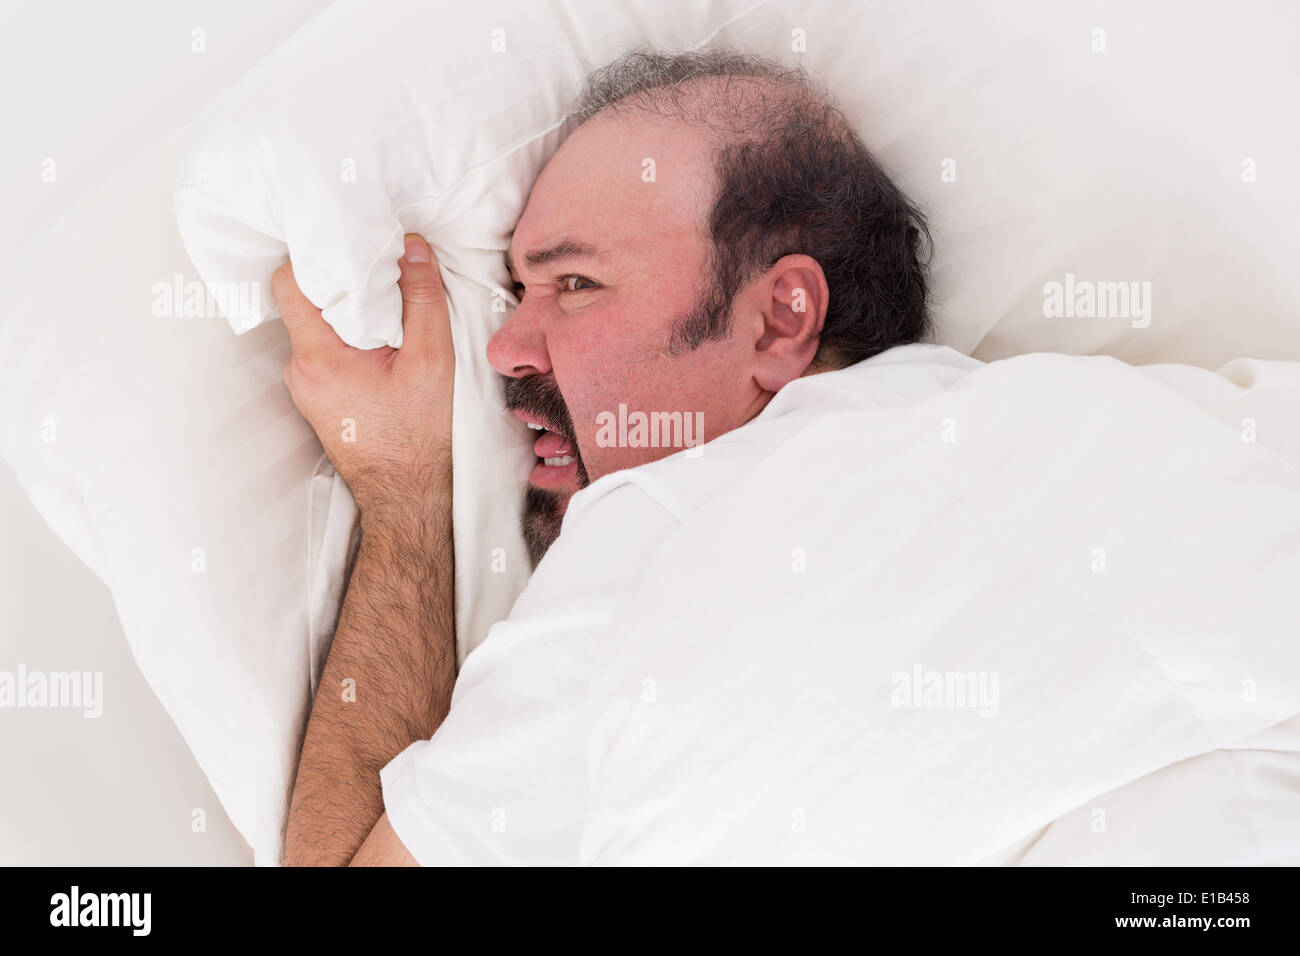 Insomniac clutching at his pillow in desperation as he balefully refuses to get up in the morning after a sleepless night - Stock Image